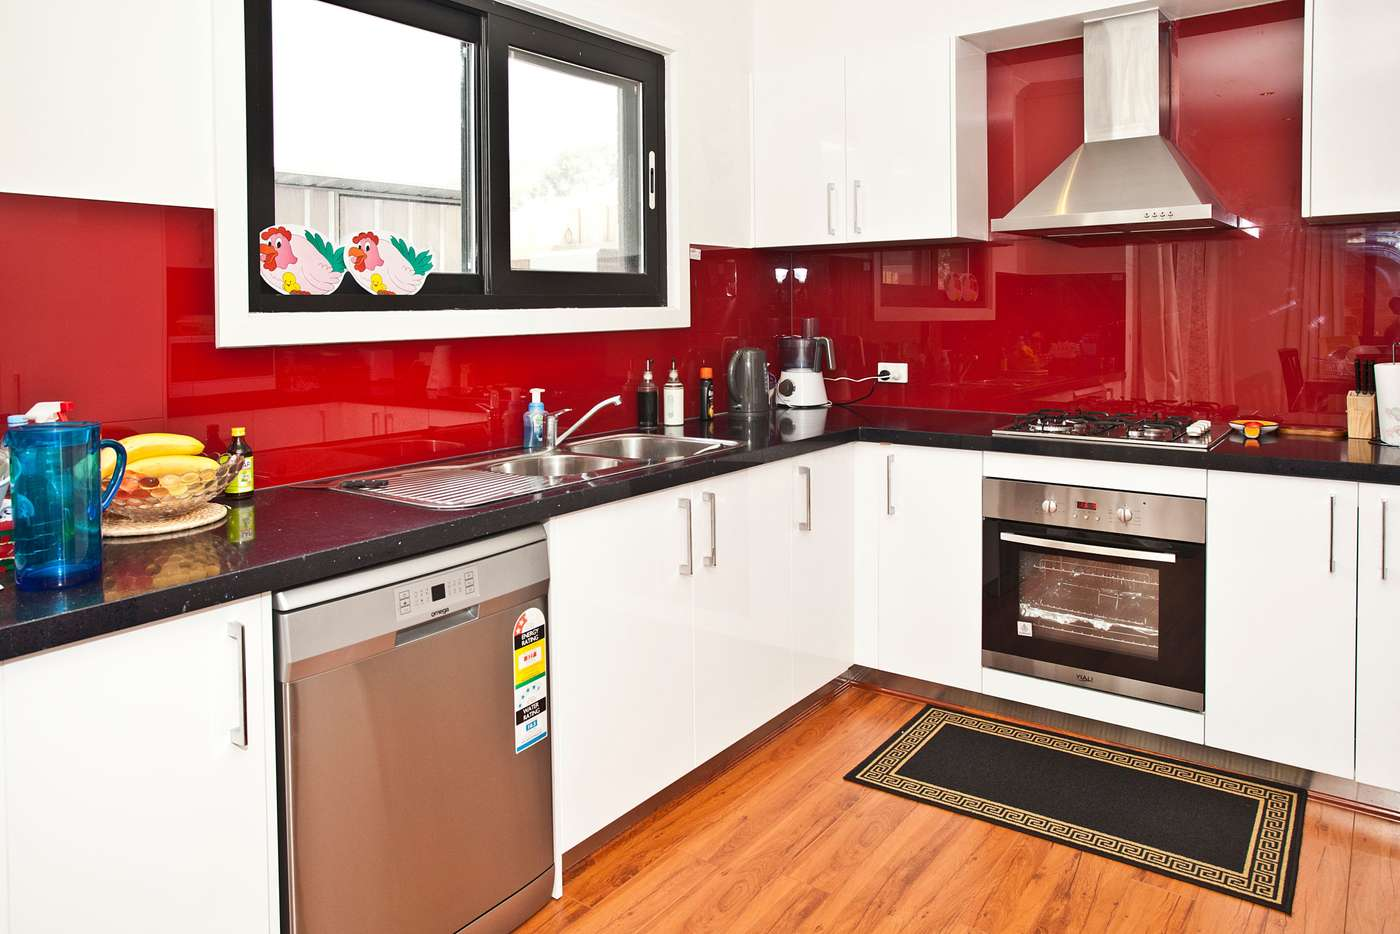 Main view of Homely townhouse listing, 4/9 Virginia Street, Springvale VIC 3171